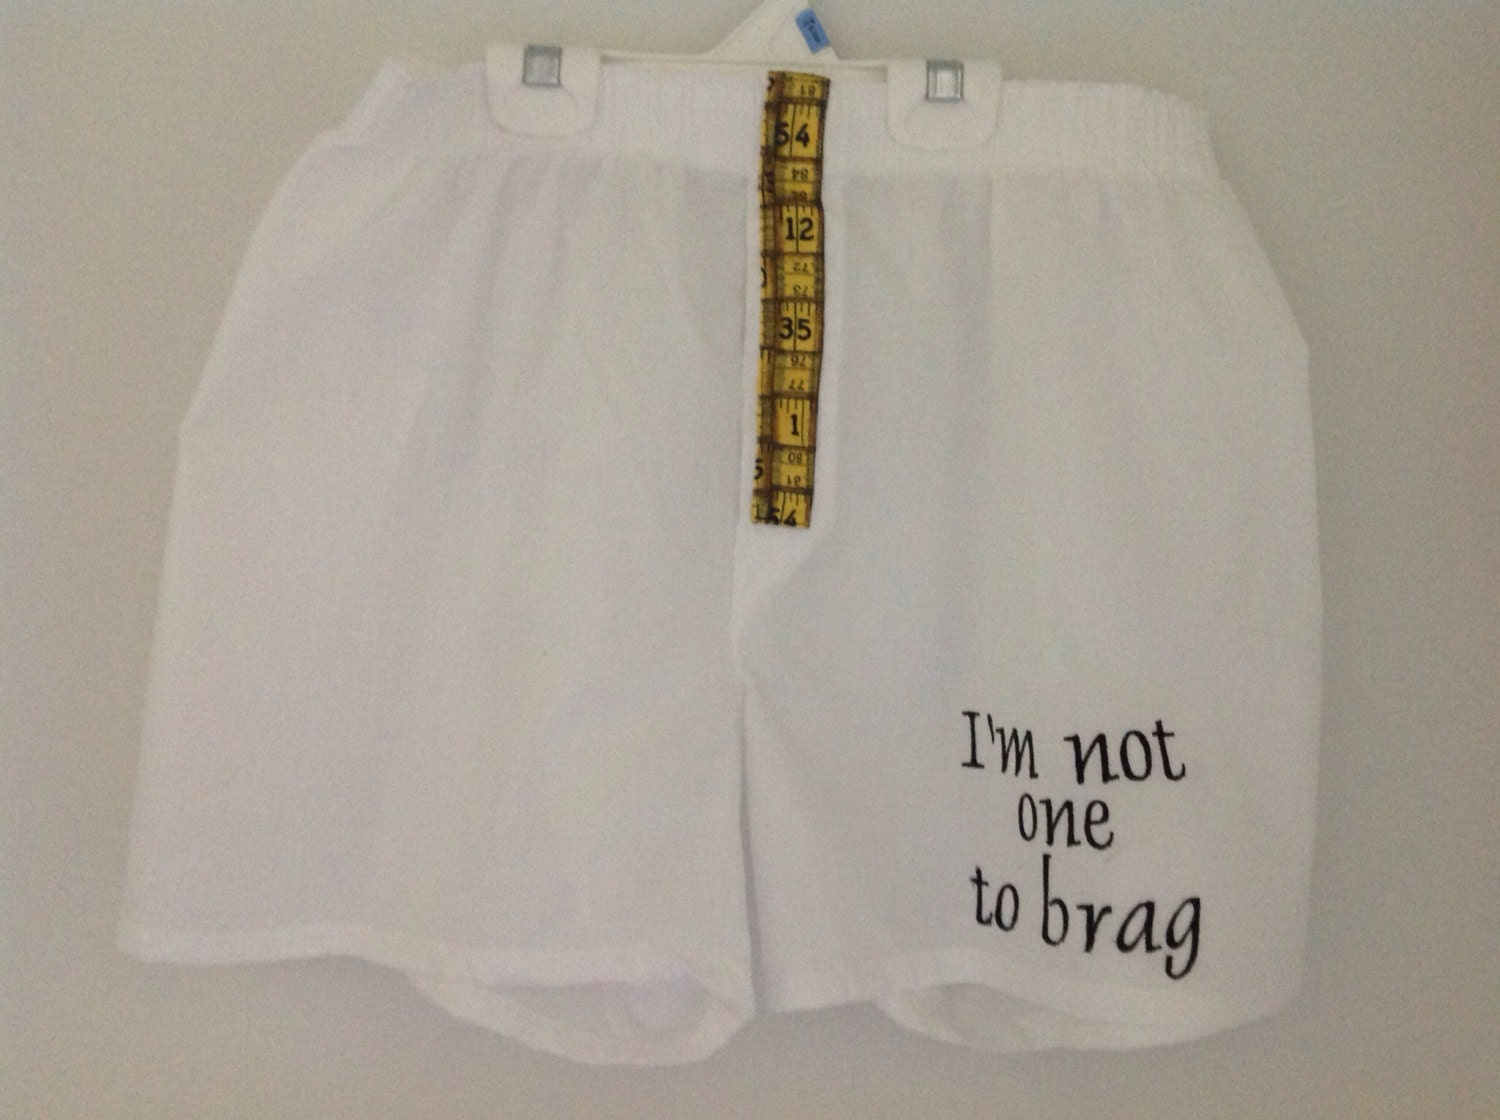 Funny Gag Gifts: Funny Gifts, Joke Gift Ideas, Fun Novelty Presents